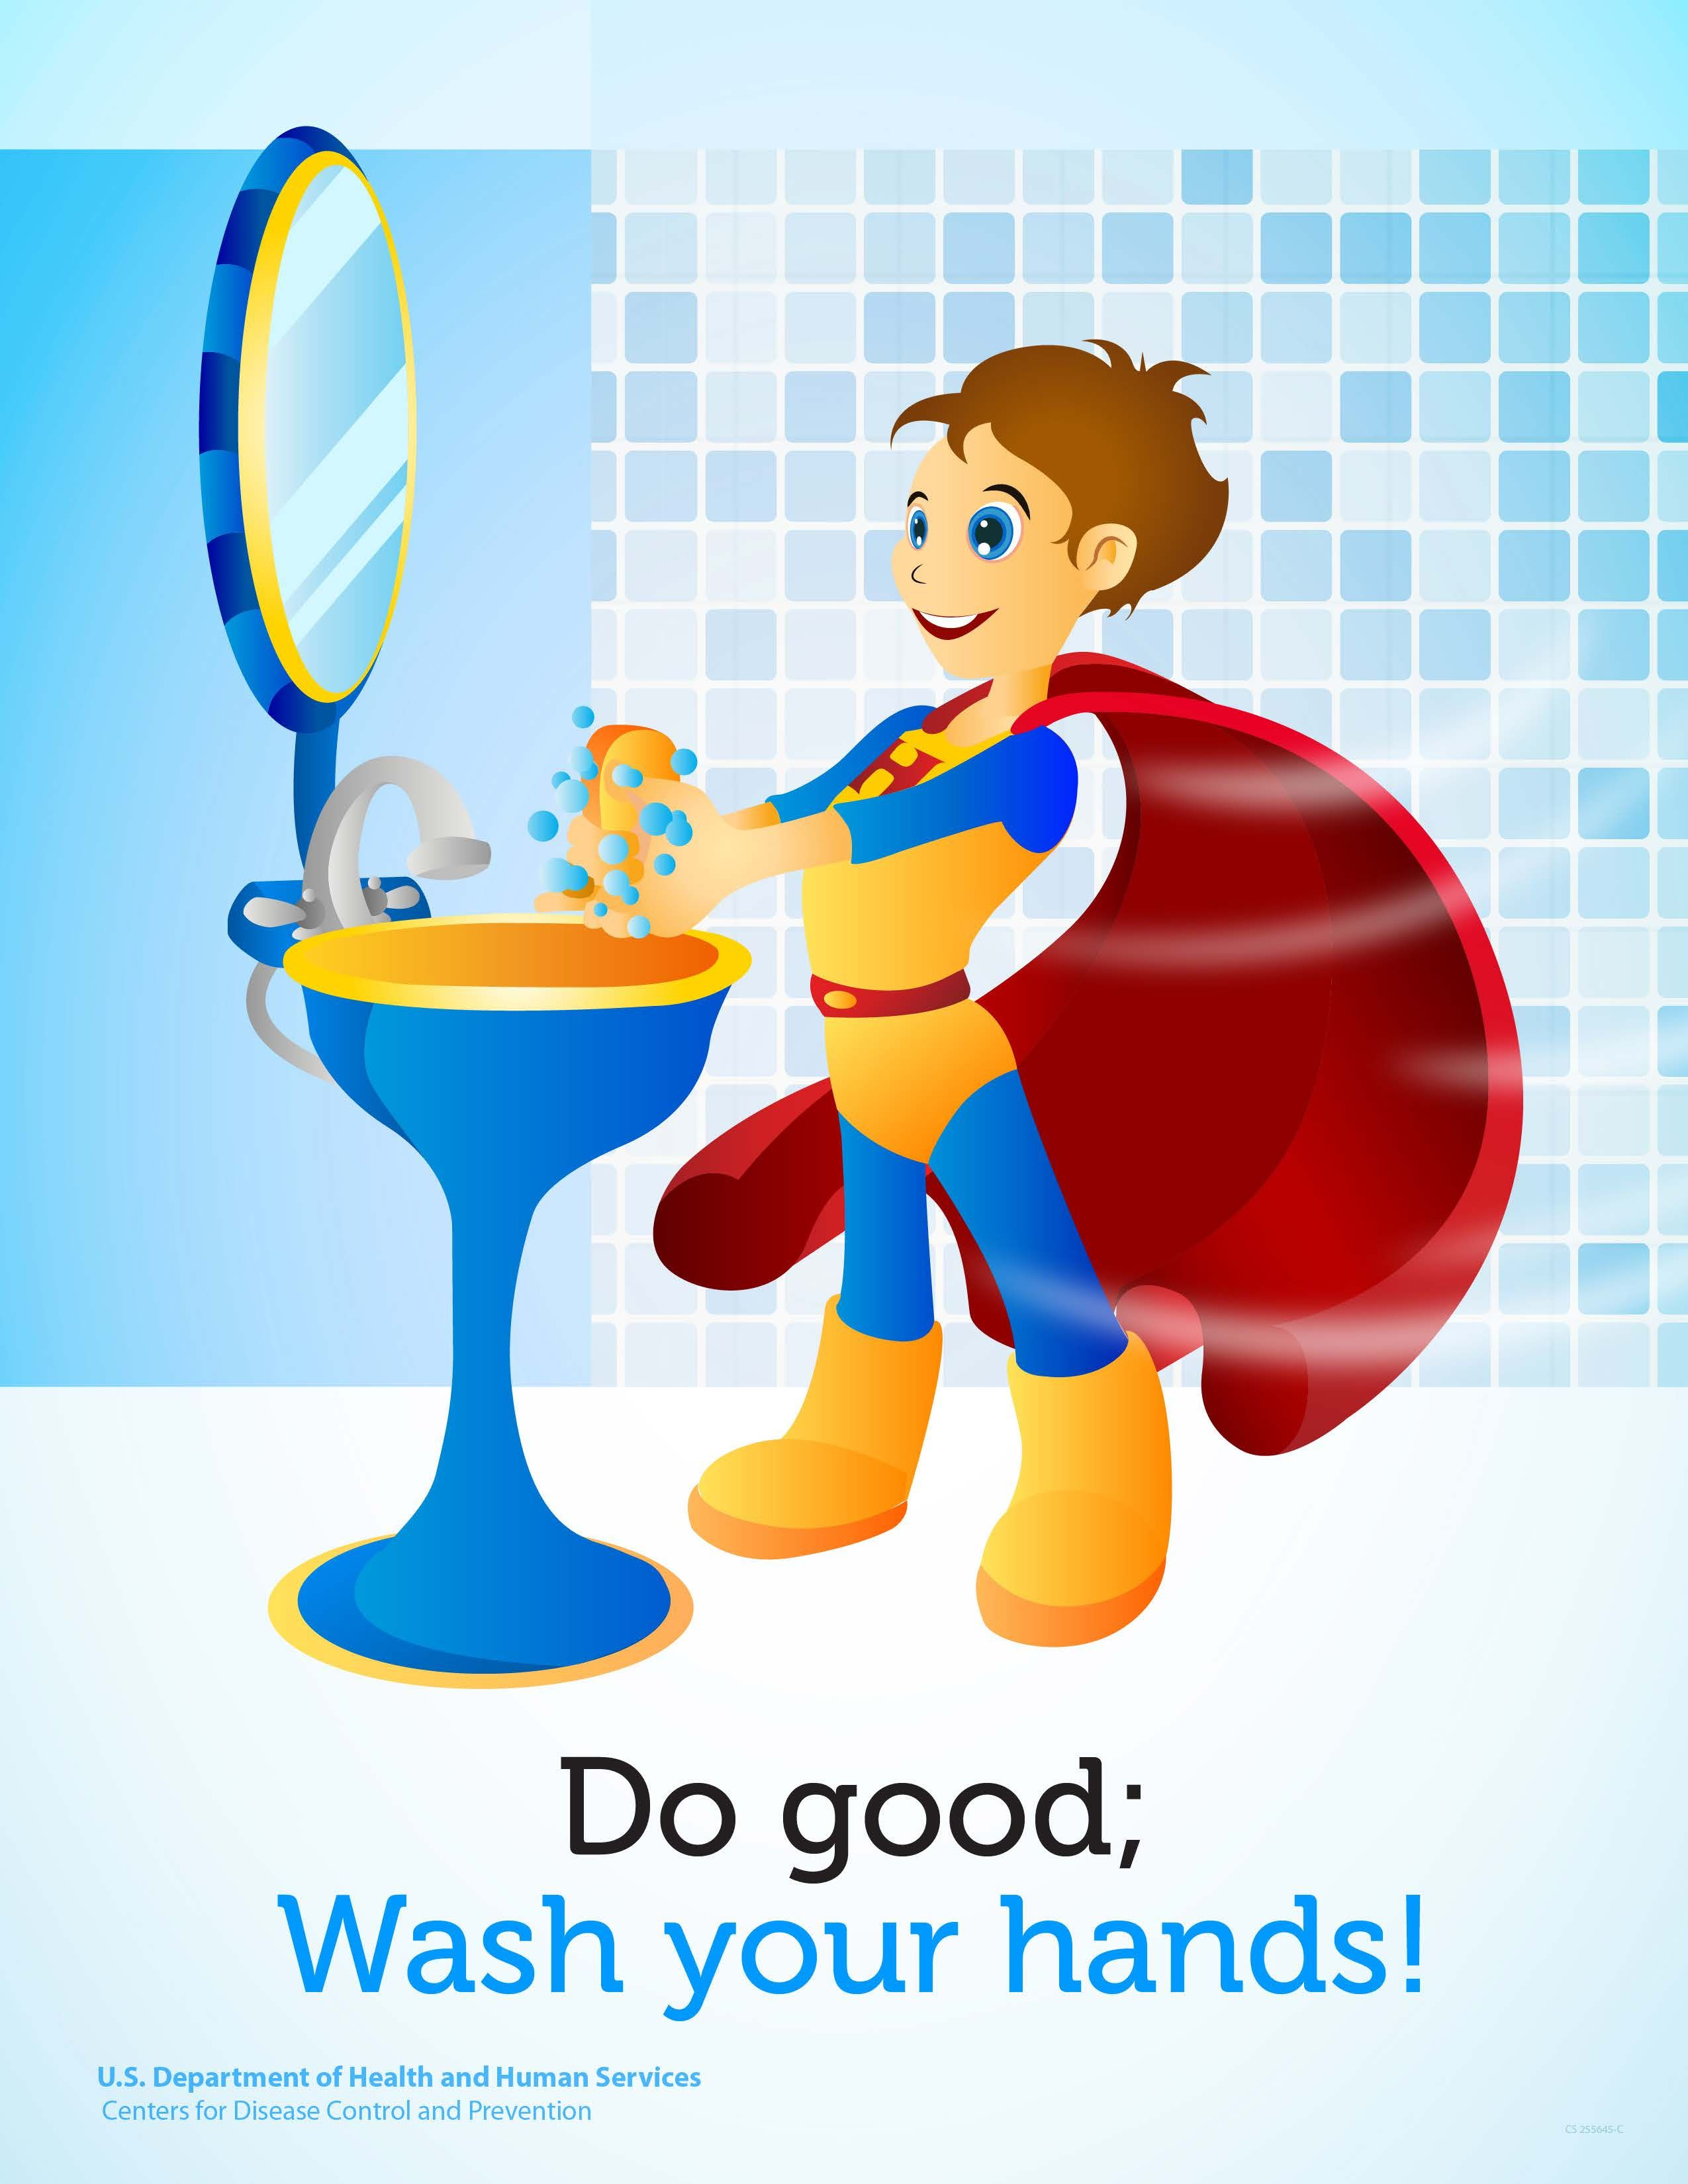 Do Good Wash Your Hands Hand Washing Poster Awareness Poster Health Awareness Poster